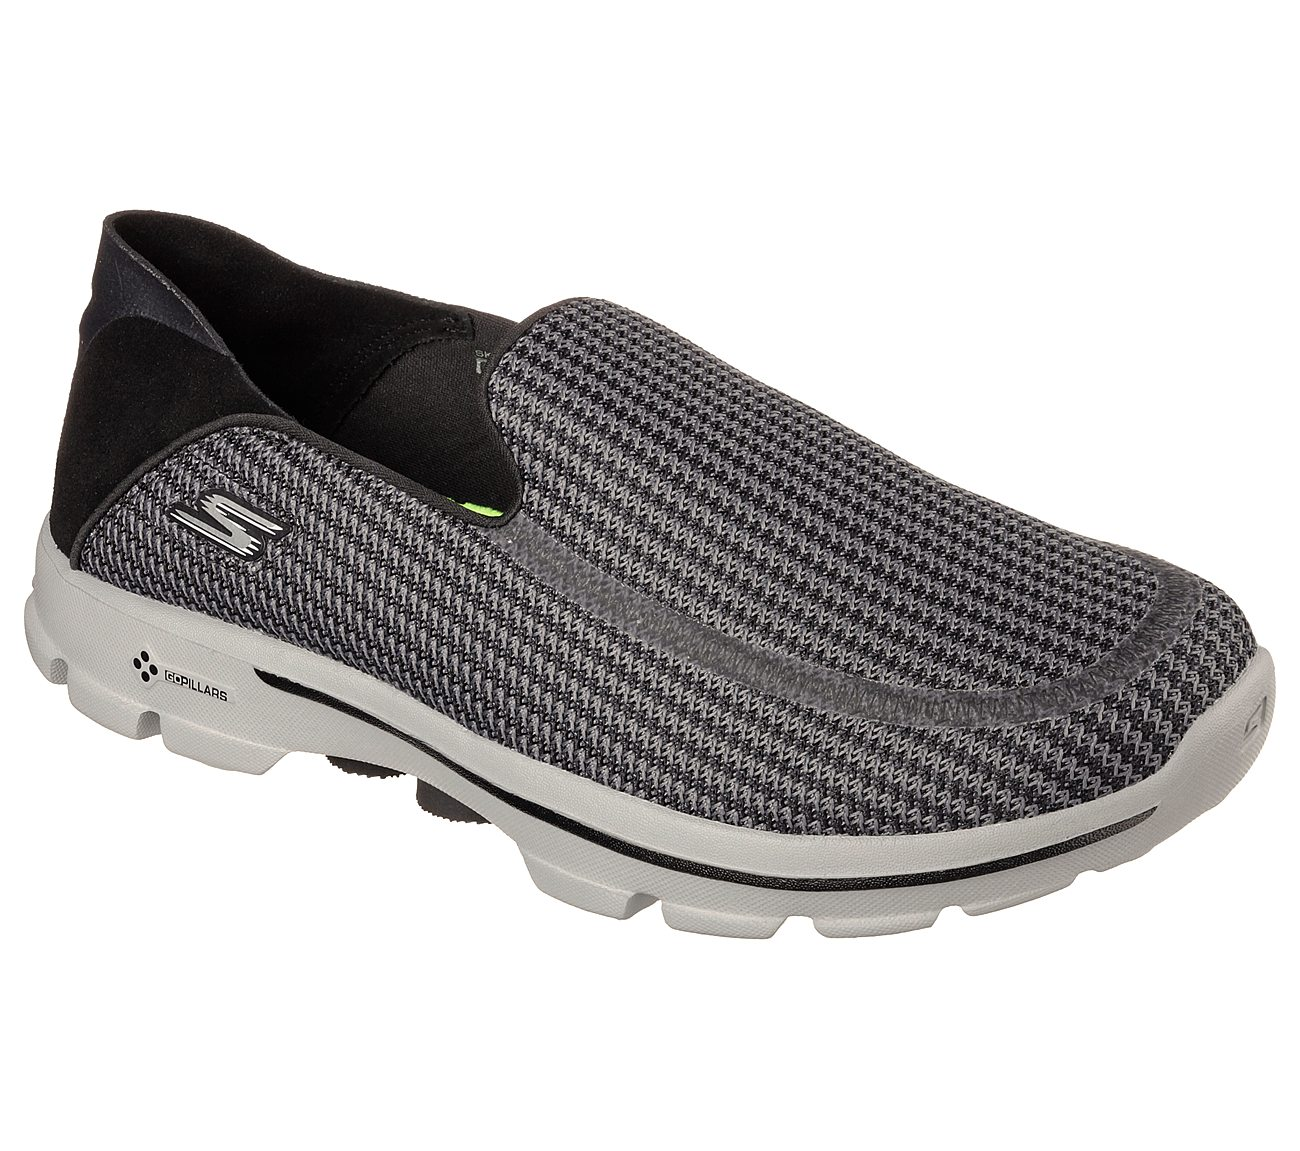 936fa40a51dd Buy SKECHERS Skechers GOwalk 3 - Lounge Skechers Performance Shoes ...